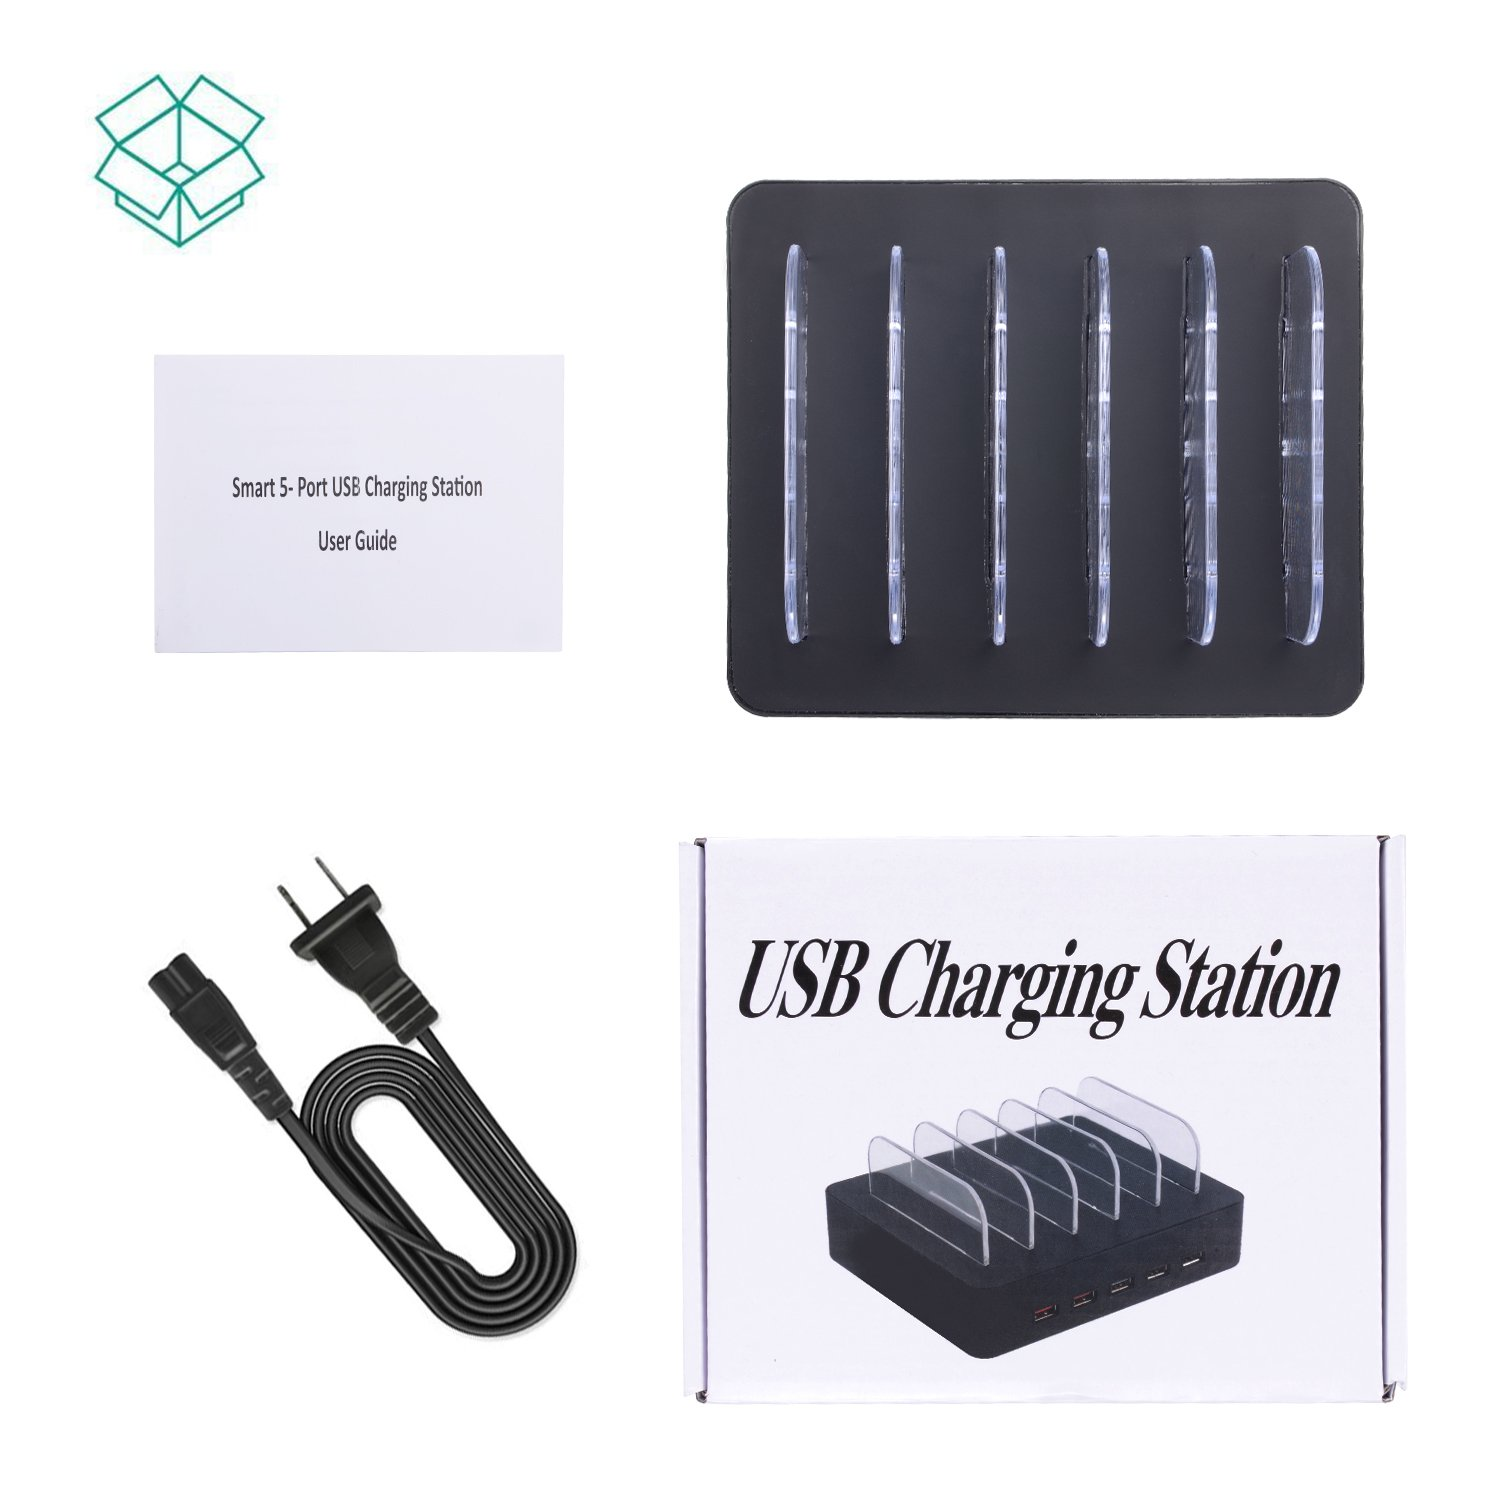 Fastest Charging Station for Multiple Devices, Othoking USB 5-Port Charging Station Dock & Charging Stand Organizer with QC 3.0 for Smartphones, Tablets & Other Gadgets by OthoKing (Image #7)